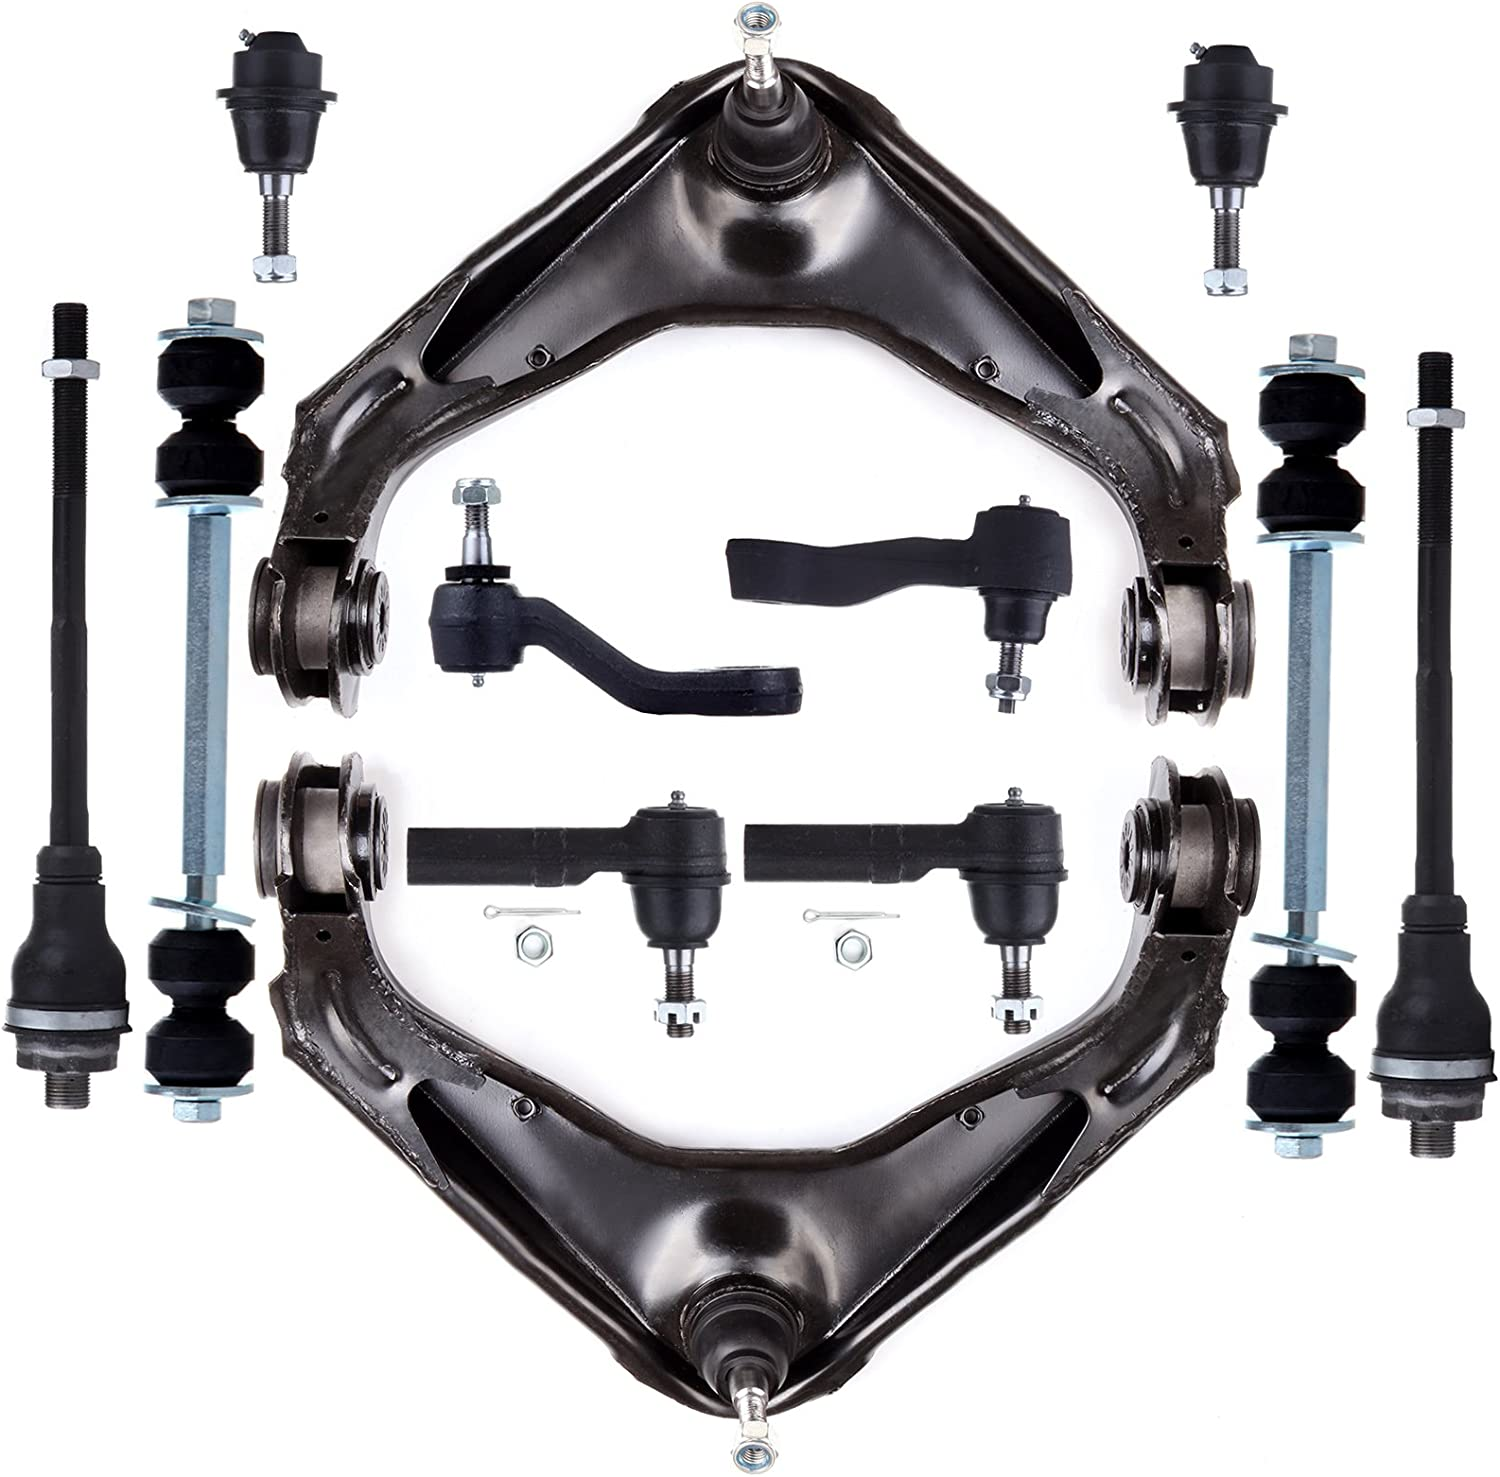 ECCPP Front Suspension Control Arm and Ball Joint Assembly Tie Rod Ends Inner and Outer Sway Bar Link Kits Idler Arm and Pitman Arm Kit for 2002-2006 Chevrolet Avalanche 2500 Qty 12